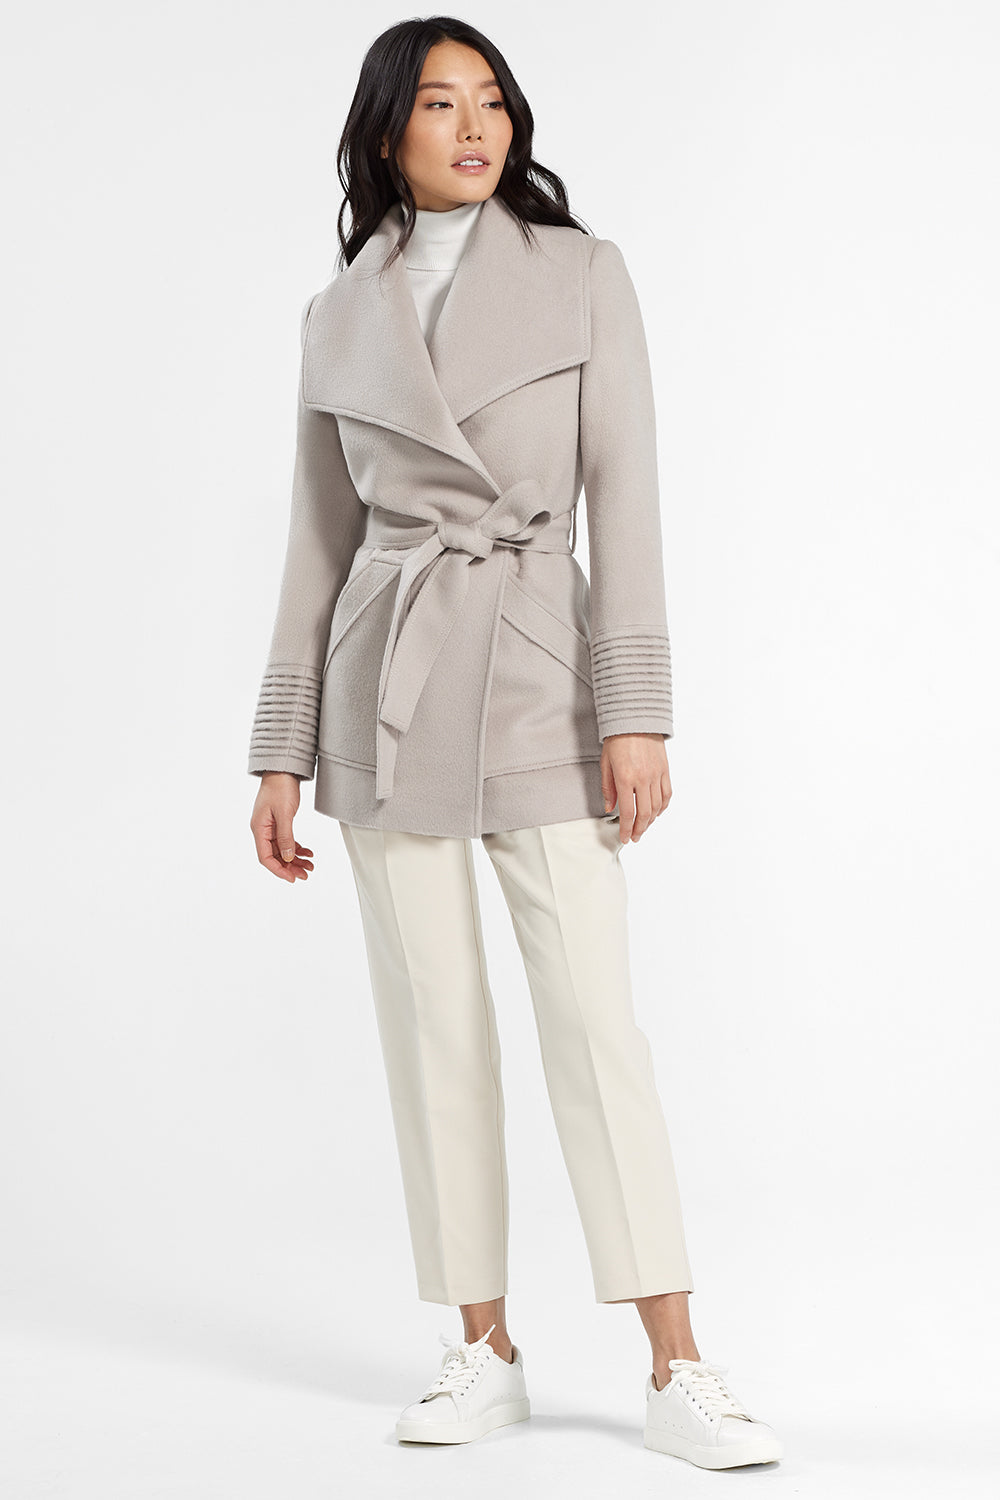 Sentaler Cropped Wide Collar Wrap Coat featured in Baby Alpaca and available in Bleeker Beige. Seen from front.